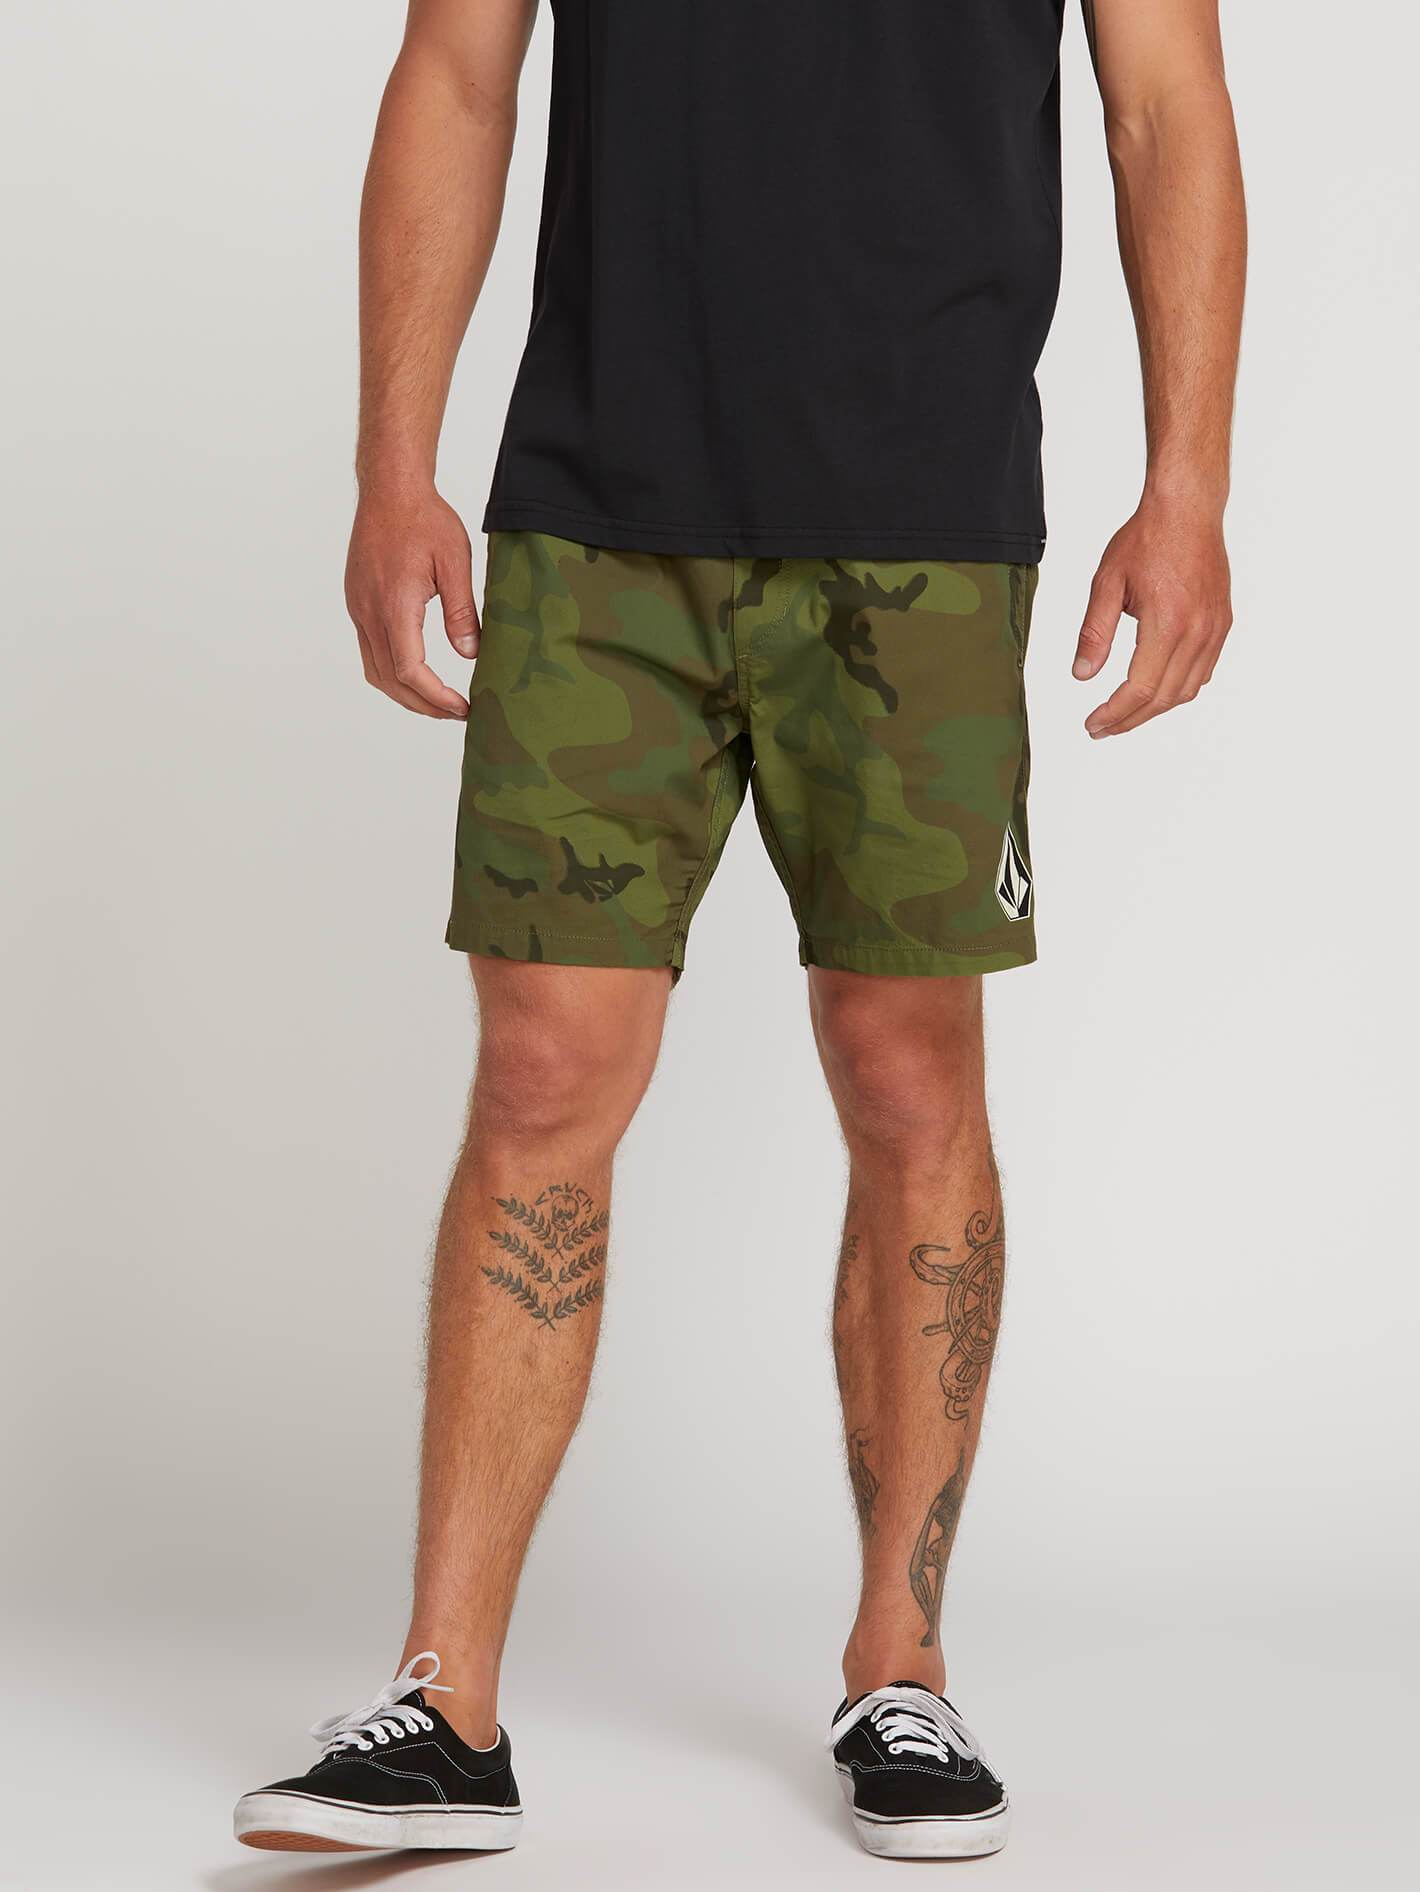 0b2c7b22b3 Deadly Stones Shorts - Camouflage in 2019 | Products | Stone ...